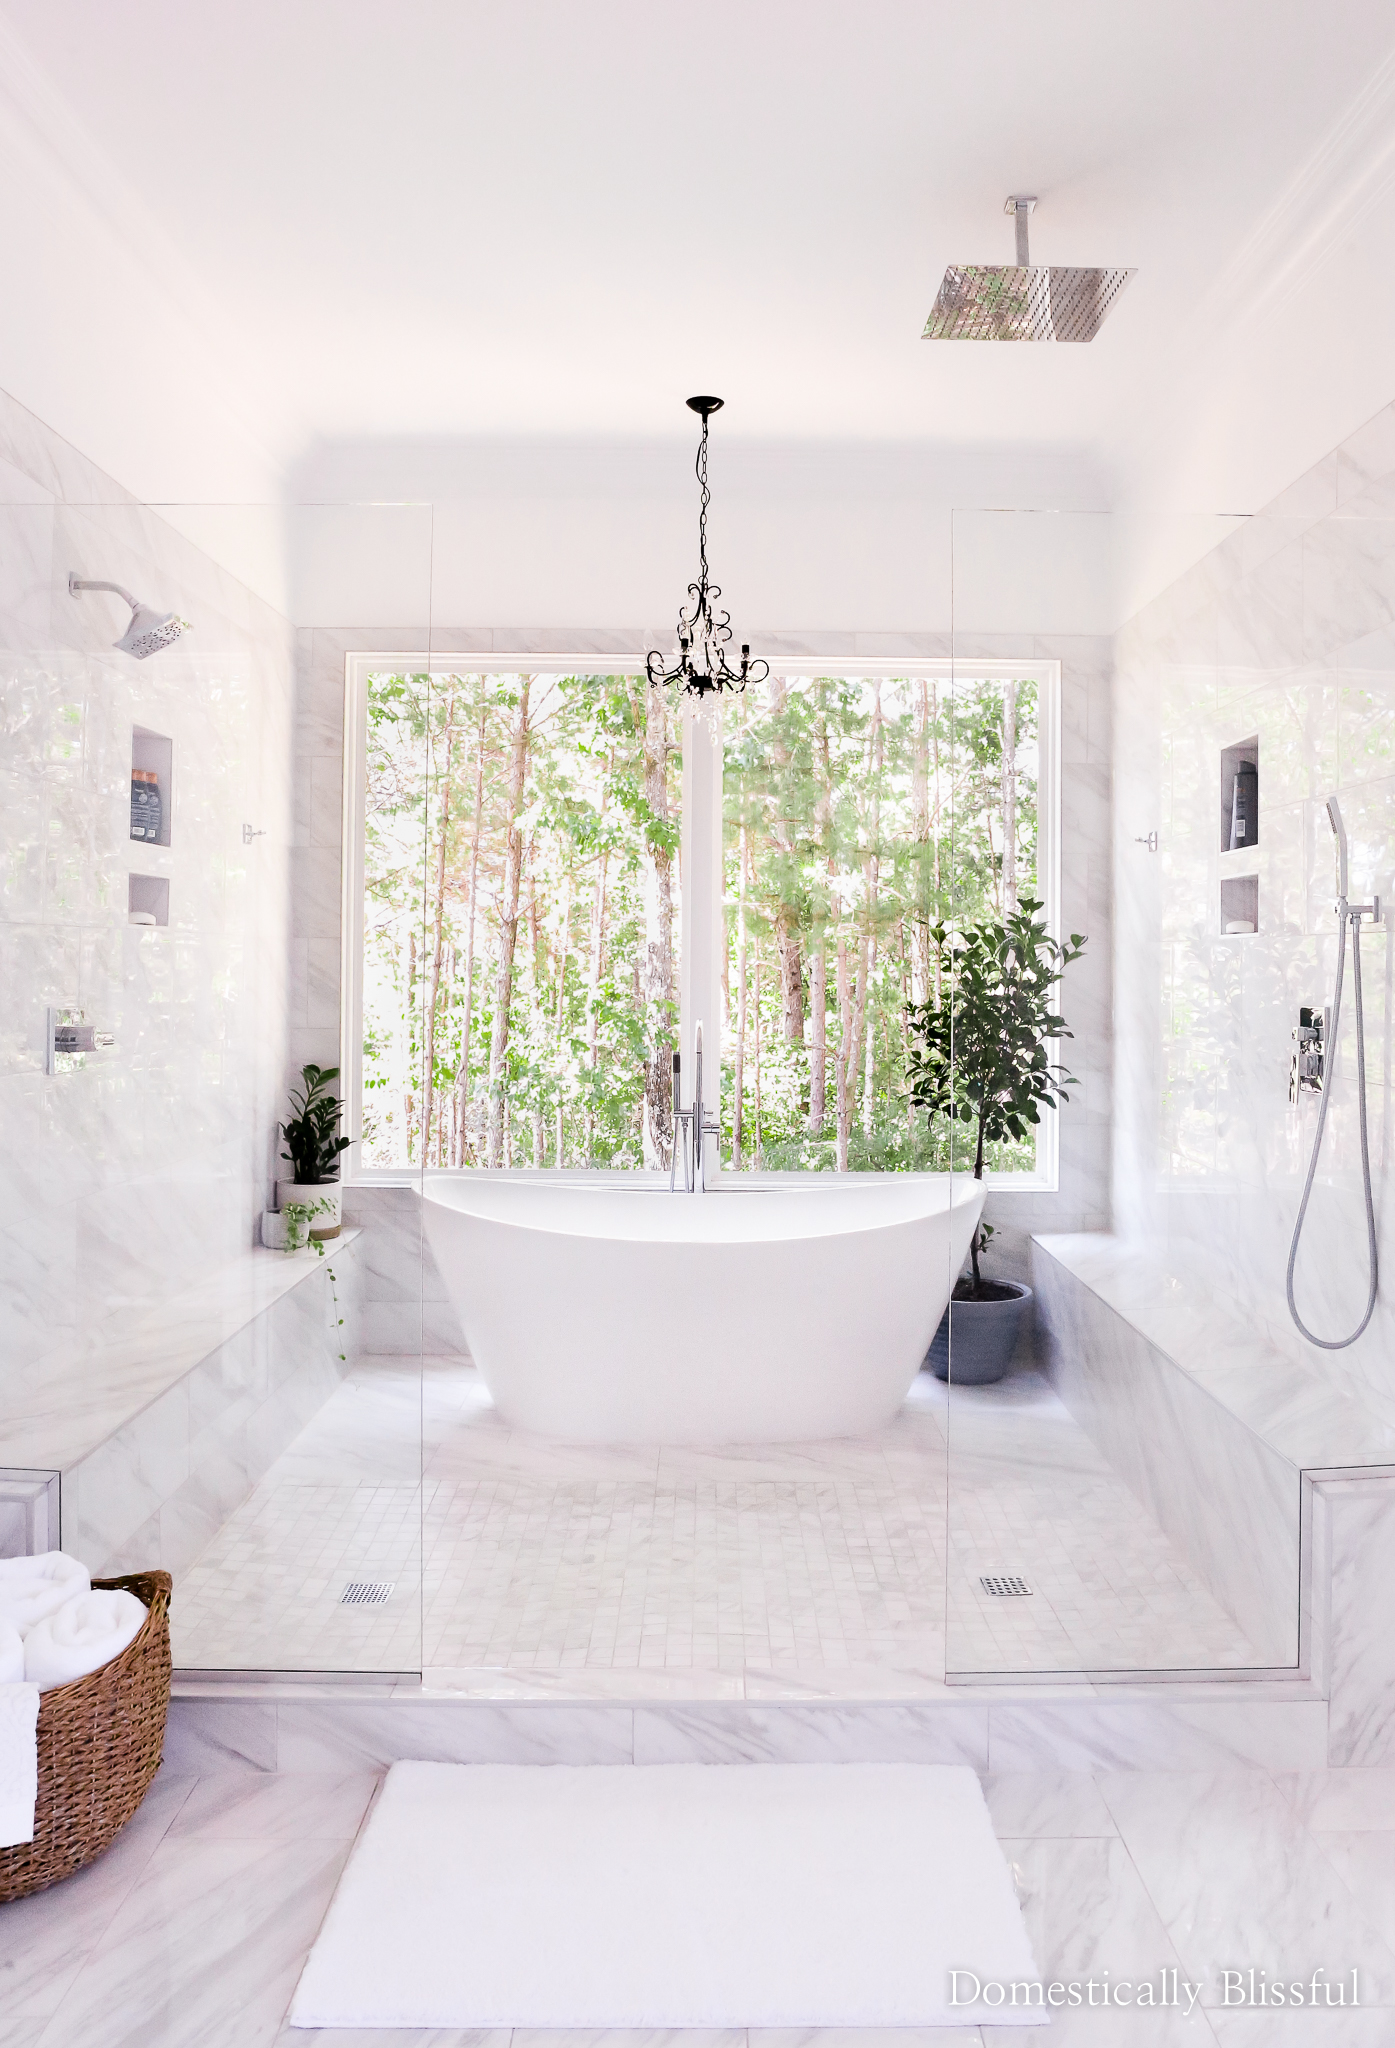 House Tour Master Bath: Domestically Blissful